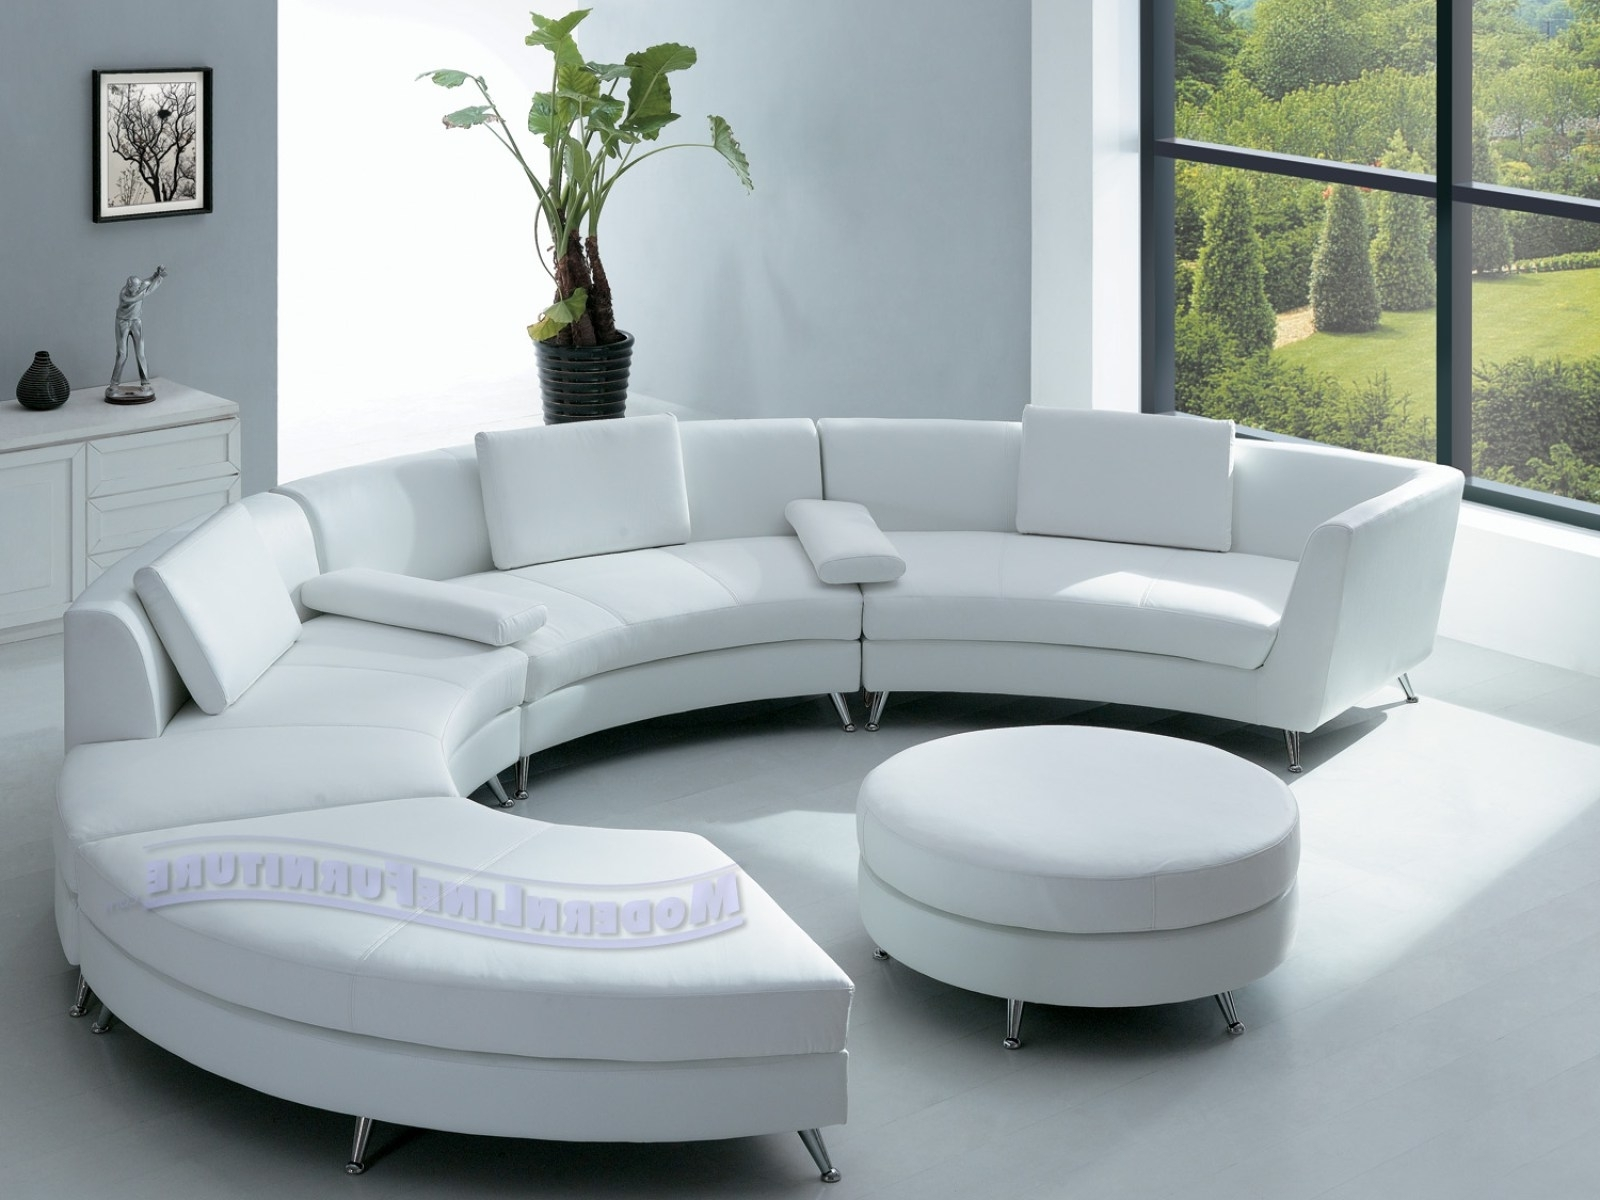 Fashionable ▻ Sofa : 19 Comfortable Half Chair Half Sofa With Pillow 5 Best With Comfortable Sofas And Chairs (View 11 of 20)